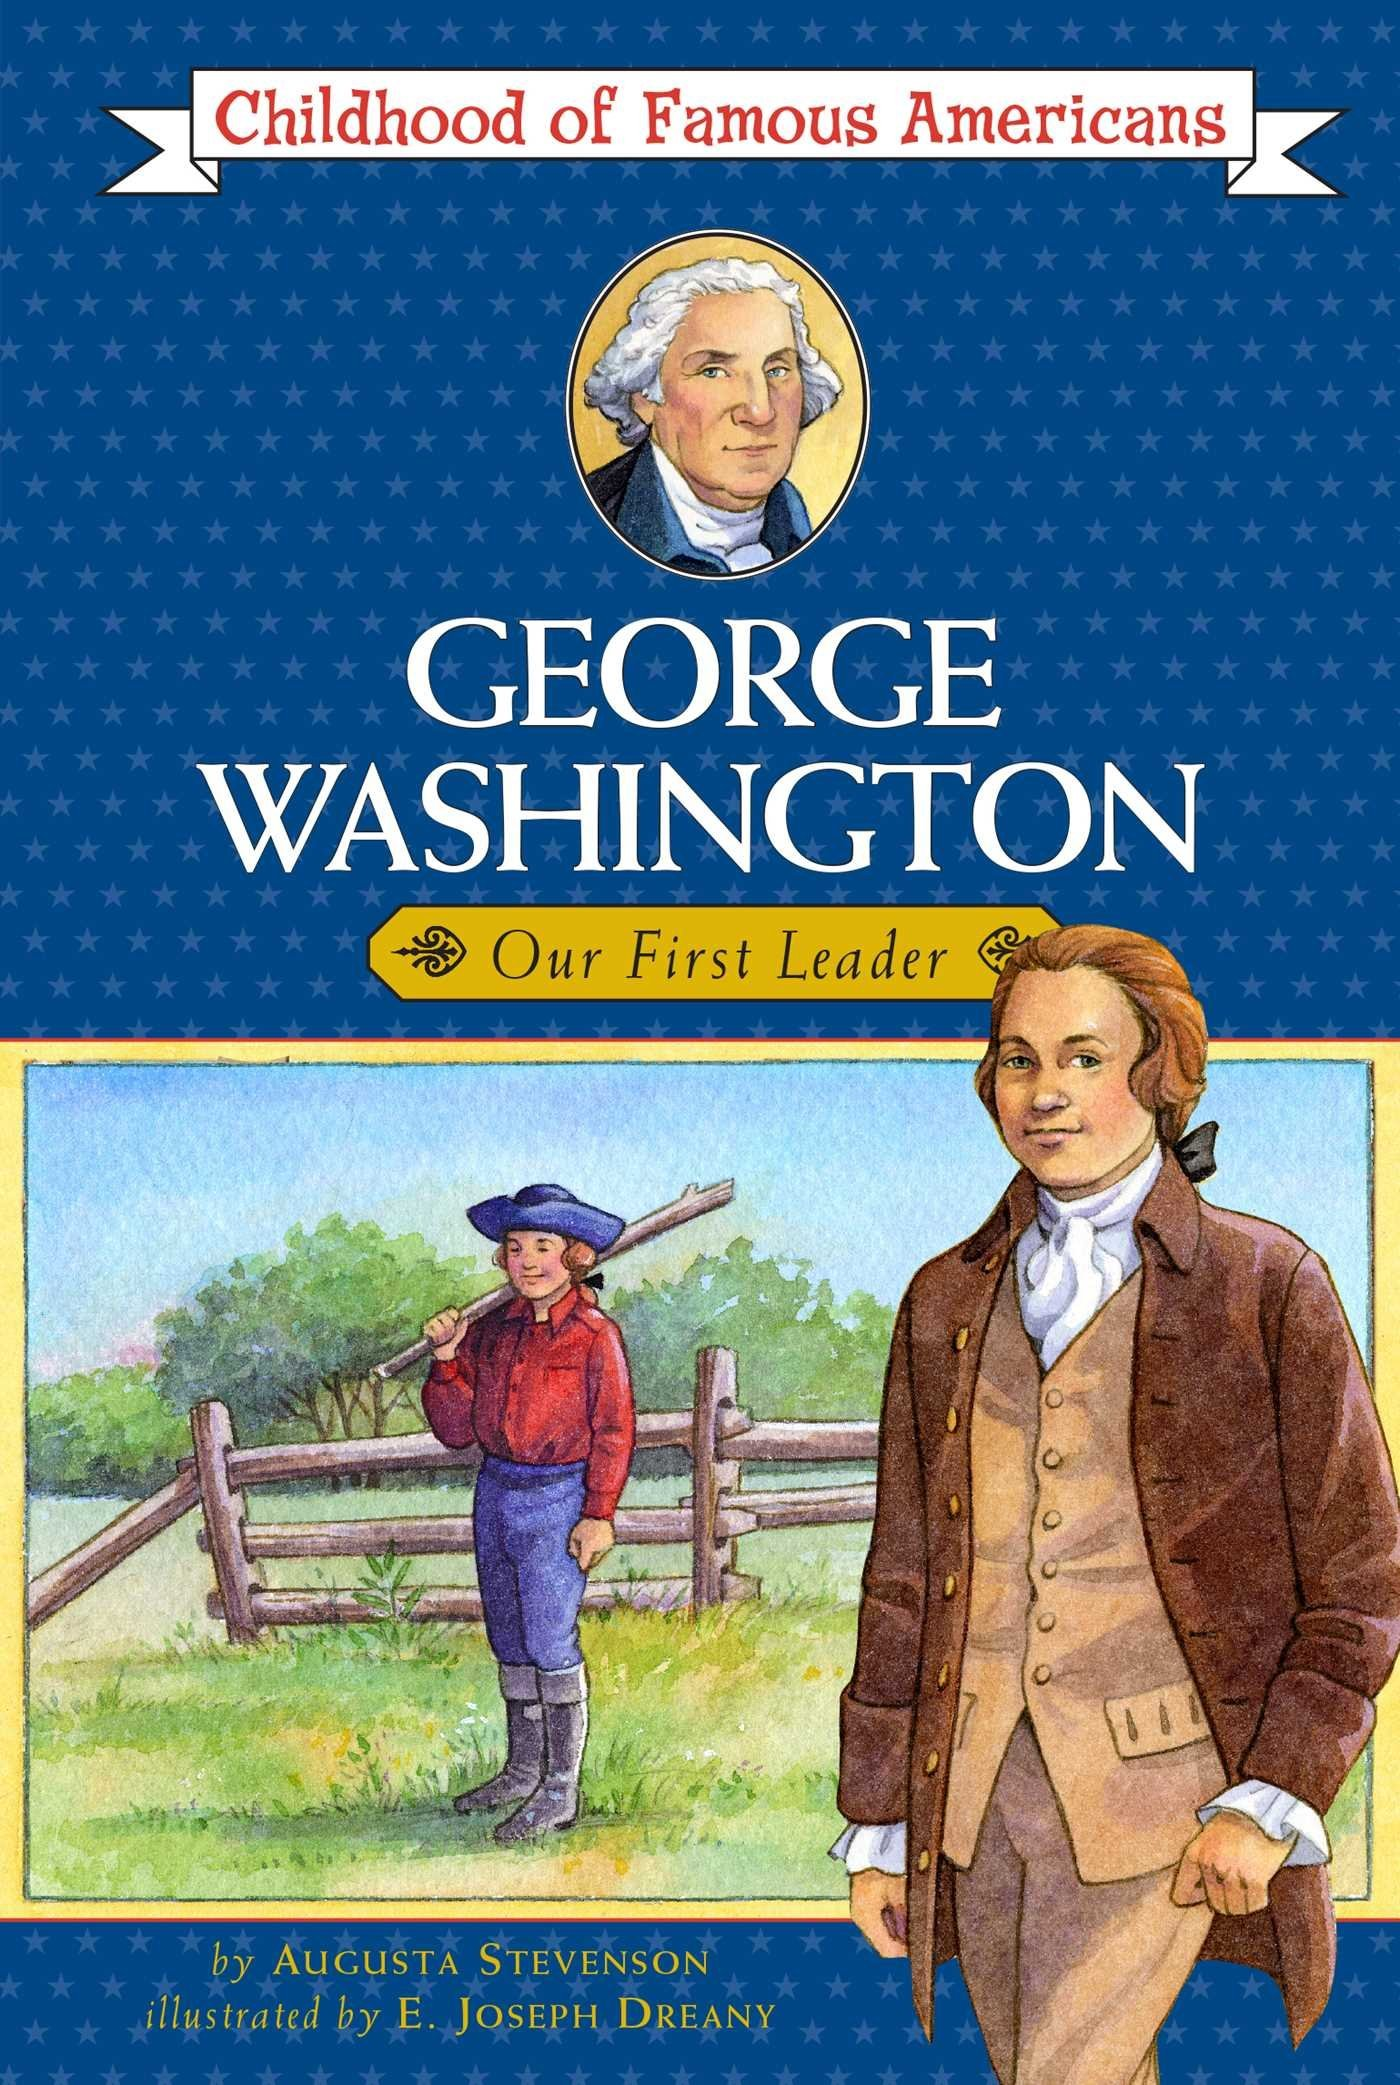 George Washington: Our First Leader (Childhood of Famous Americans) Paperback – October 31, 1986 Augusta Stevenson Aladdin 0020421508 1732-1799